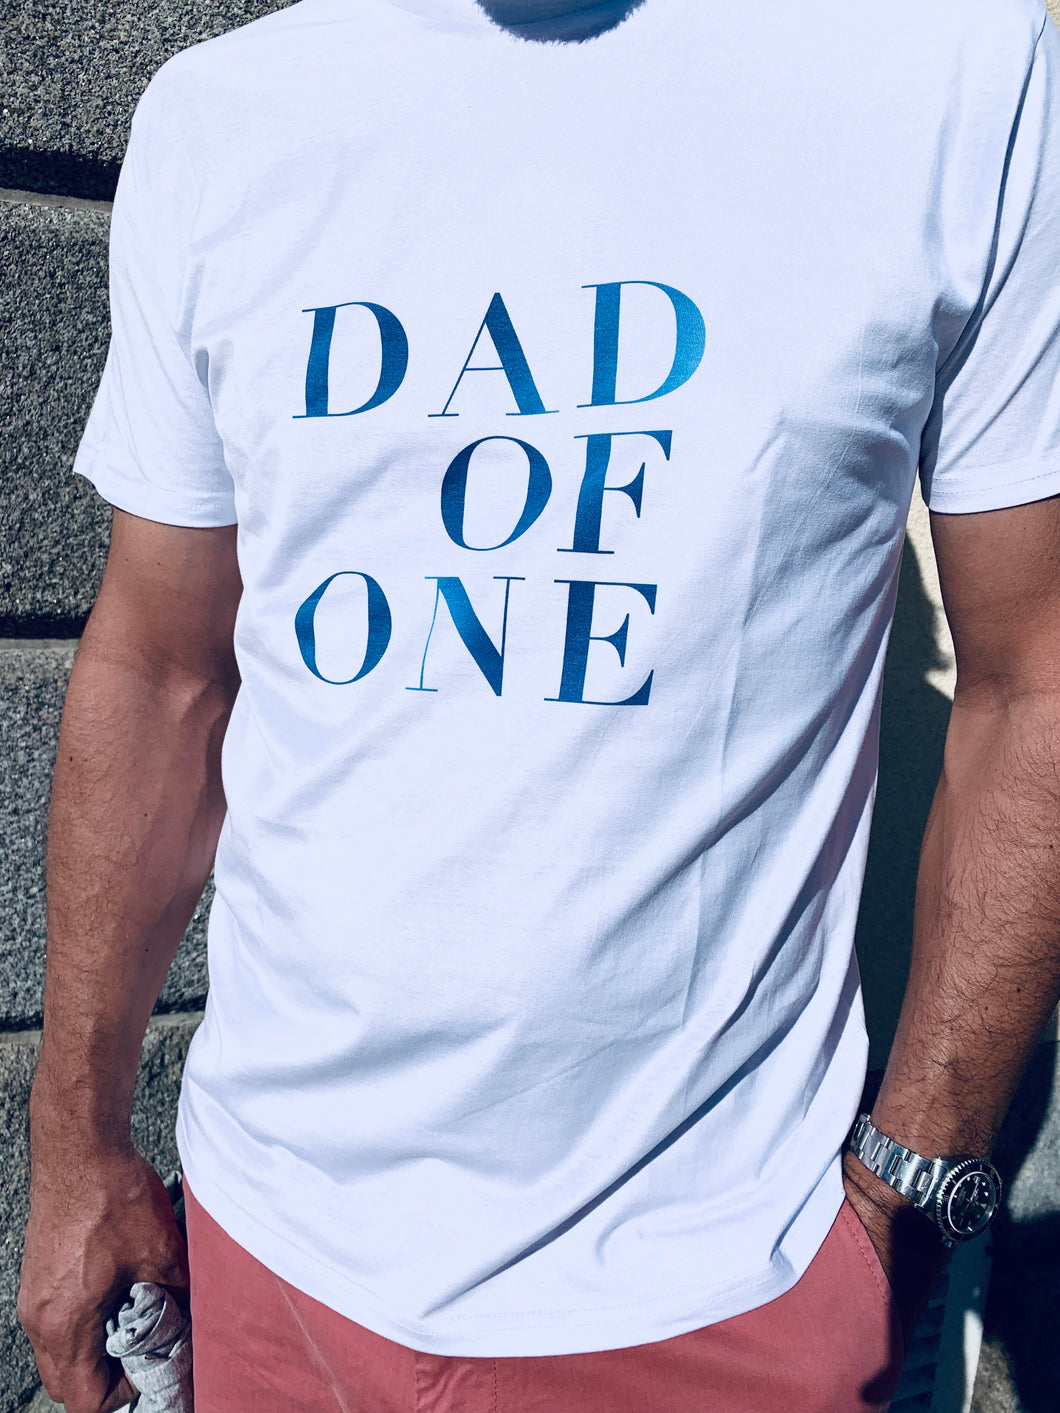 DAD OF TIE & DIE BLEU Disponible pour tous les DAD OF ONE, DAD OF TWO, DAD OF THREE, DAD OF FOUR, FIVE, SIX, TWINS, DAD TO BE